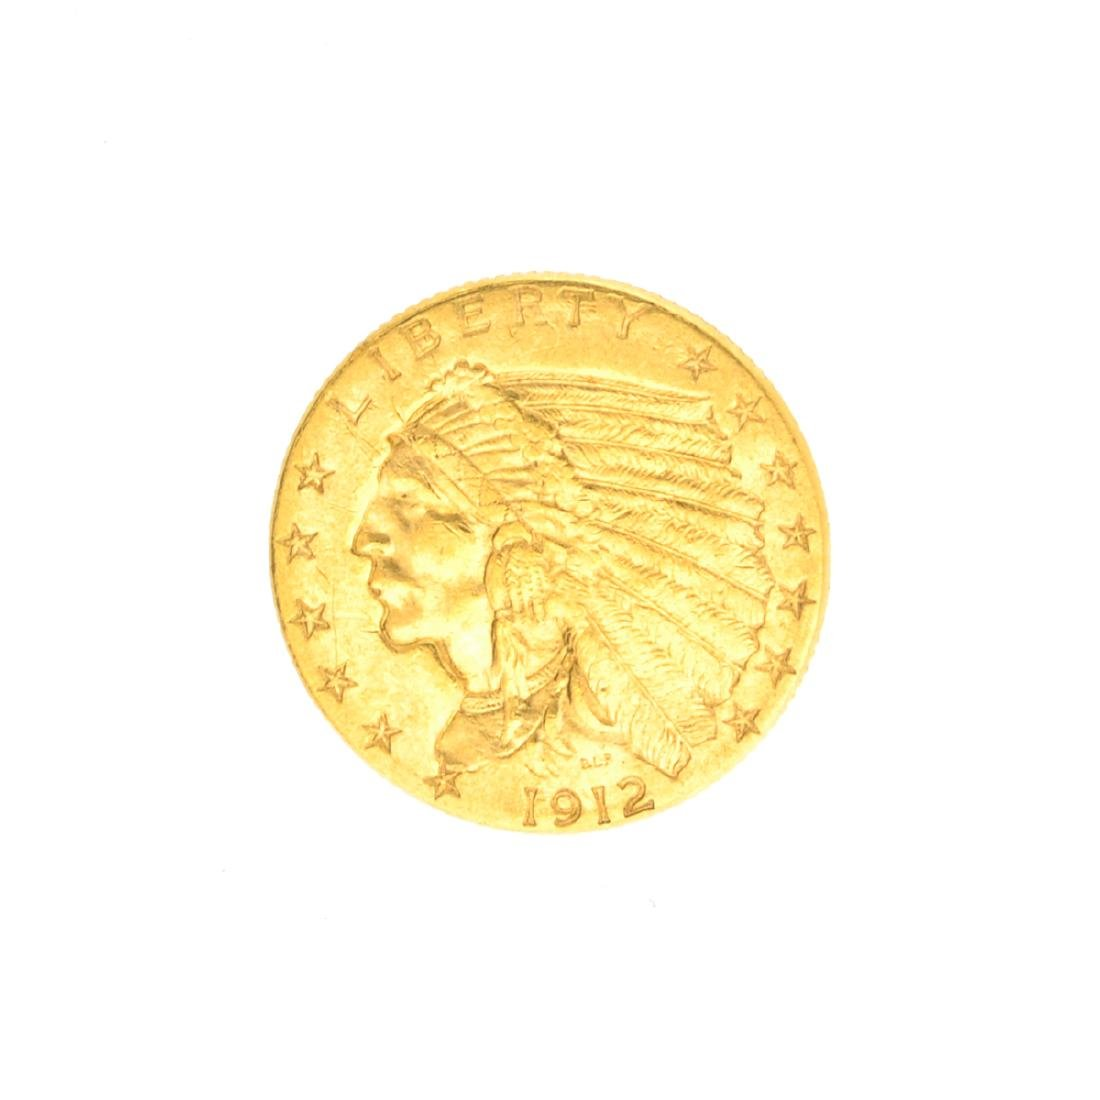 Very Rare 1912 $2.50 U.S. Indian Head Gold Coin Great